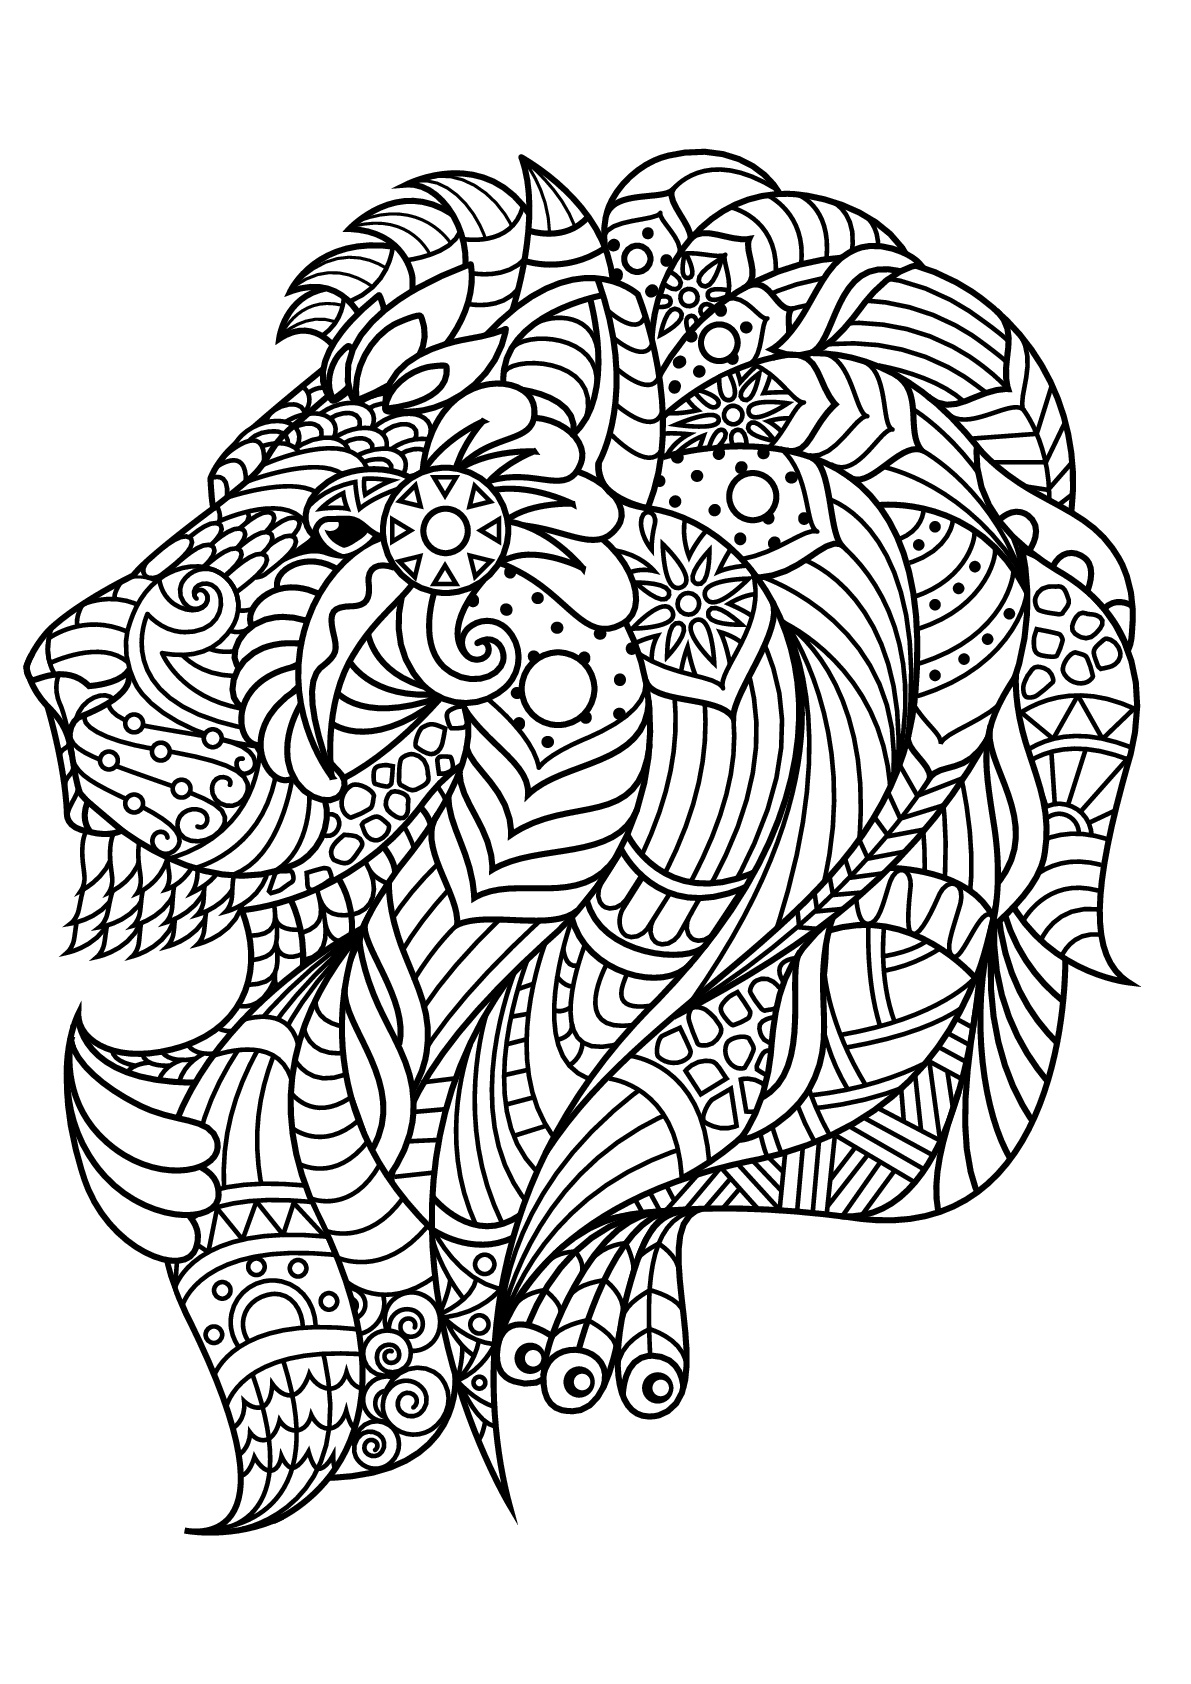 coloring lion pages lion free to color for children lion kids coloring pages coloring lion pages